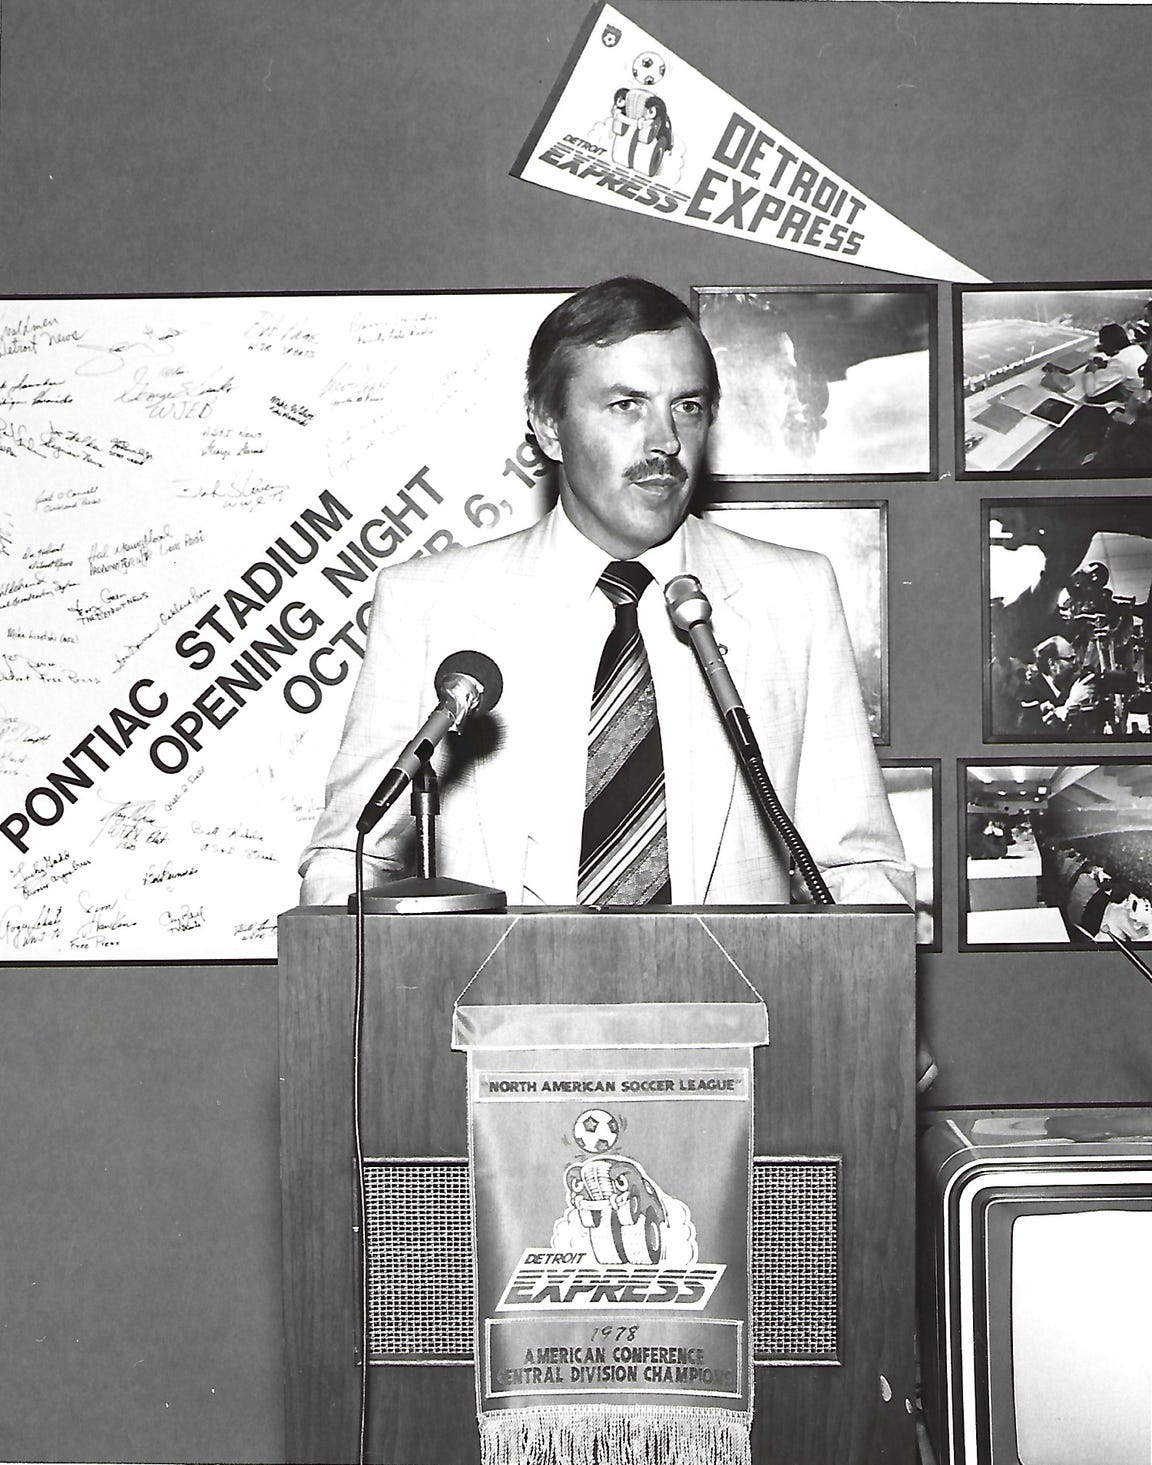 Detroit Express co-owner Roger Faulkner makes an announcement during a 1979 news conference.